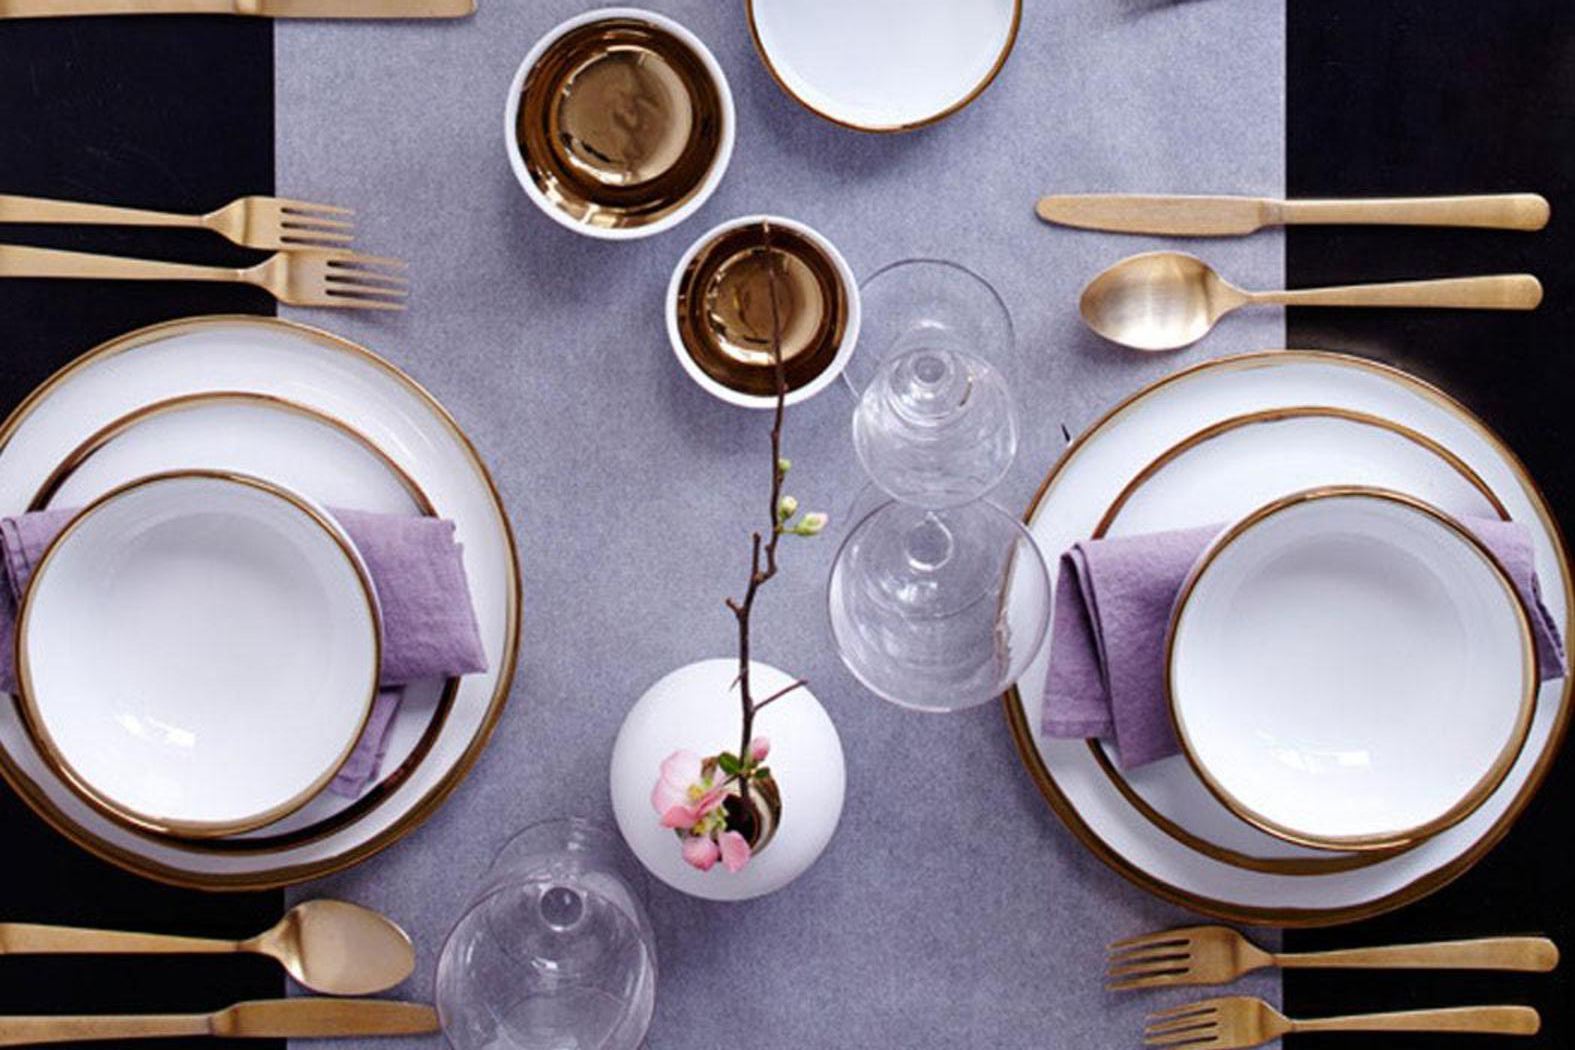 Canvas Home's Dauville range makes for lovely wedding gifts